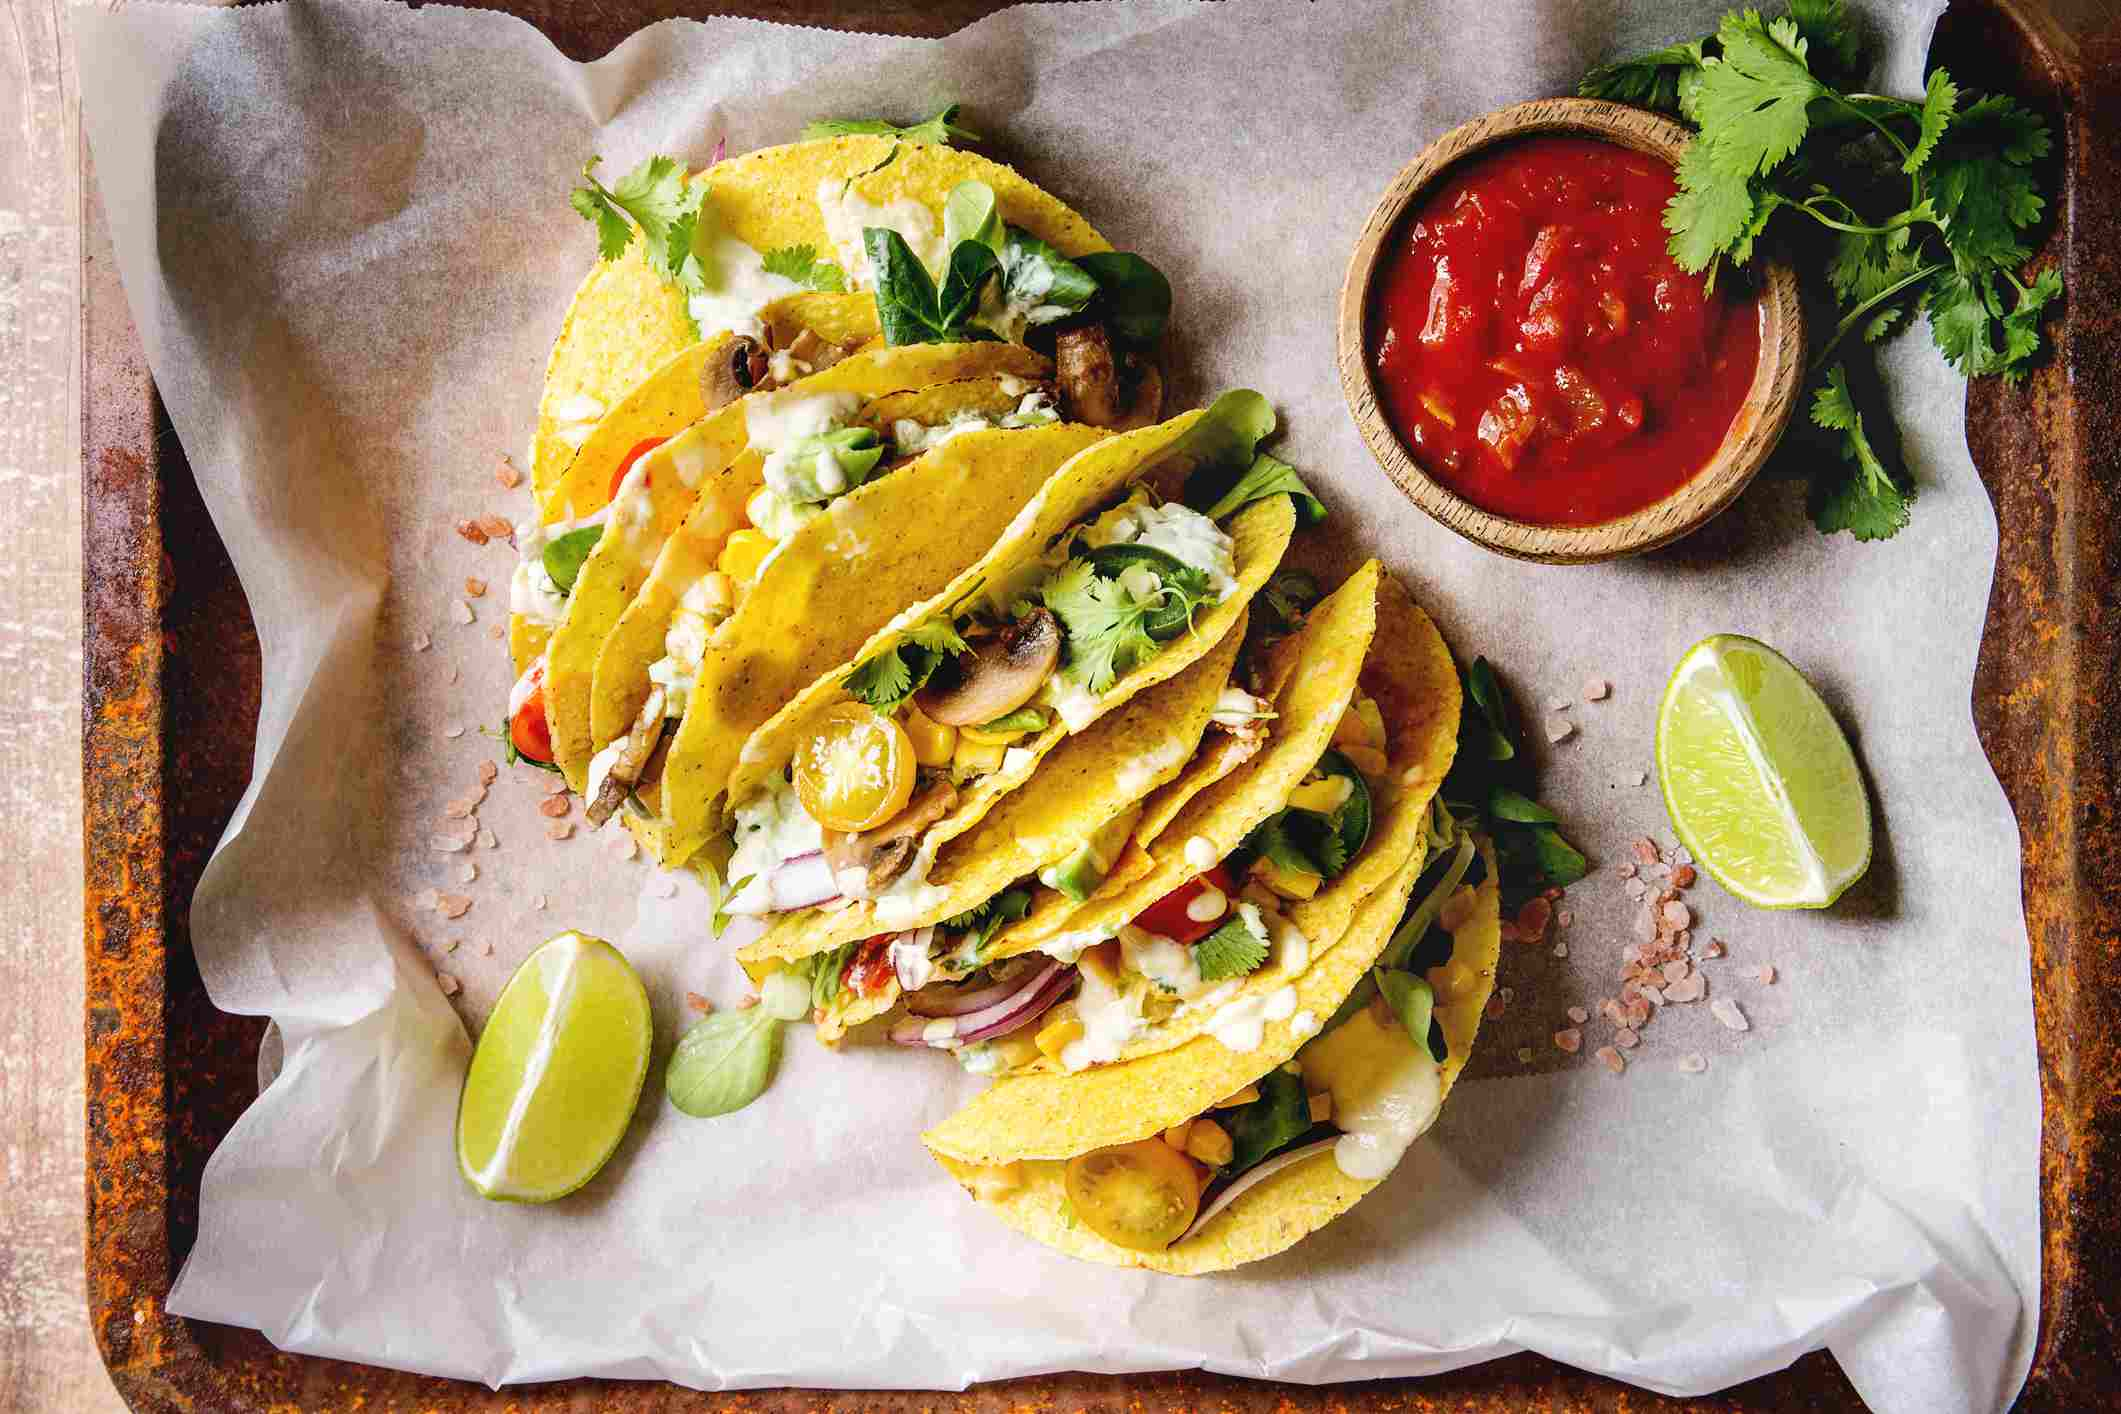 Vegetarian corn tacos with salsa and lime wedges